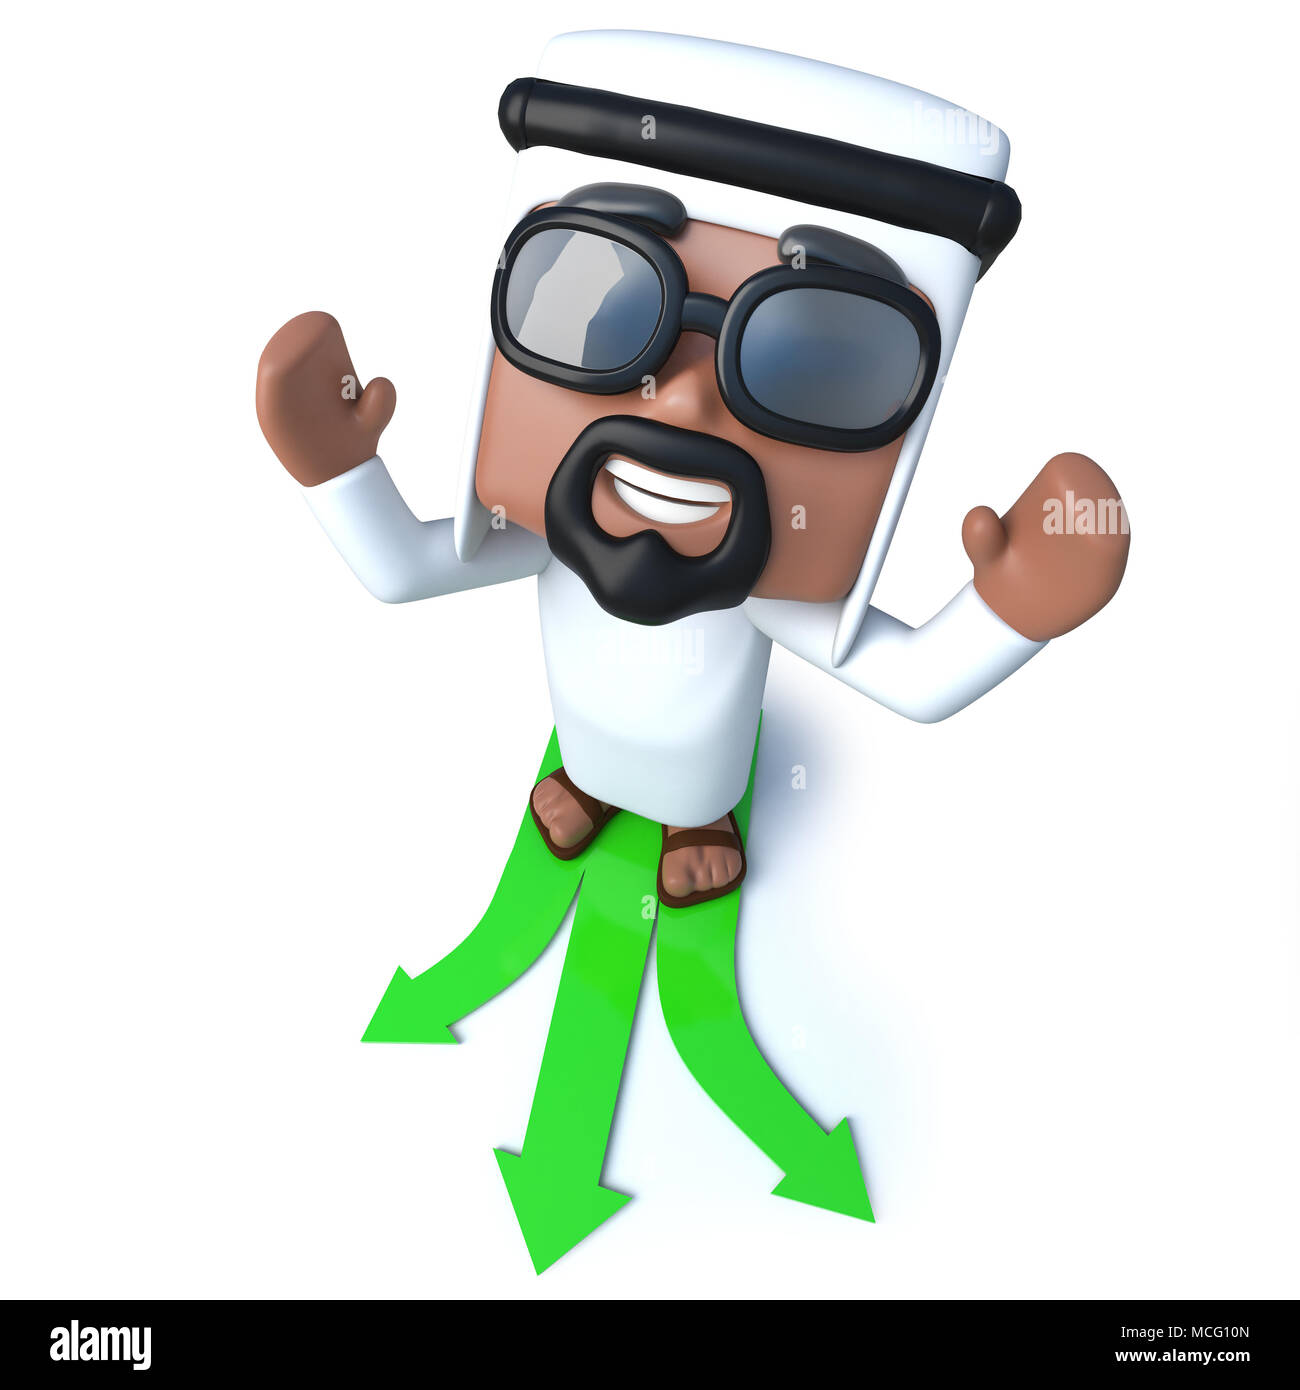 3d render of a funny cartoon Arab sheik character choosing which path to follow - Stock Image